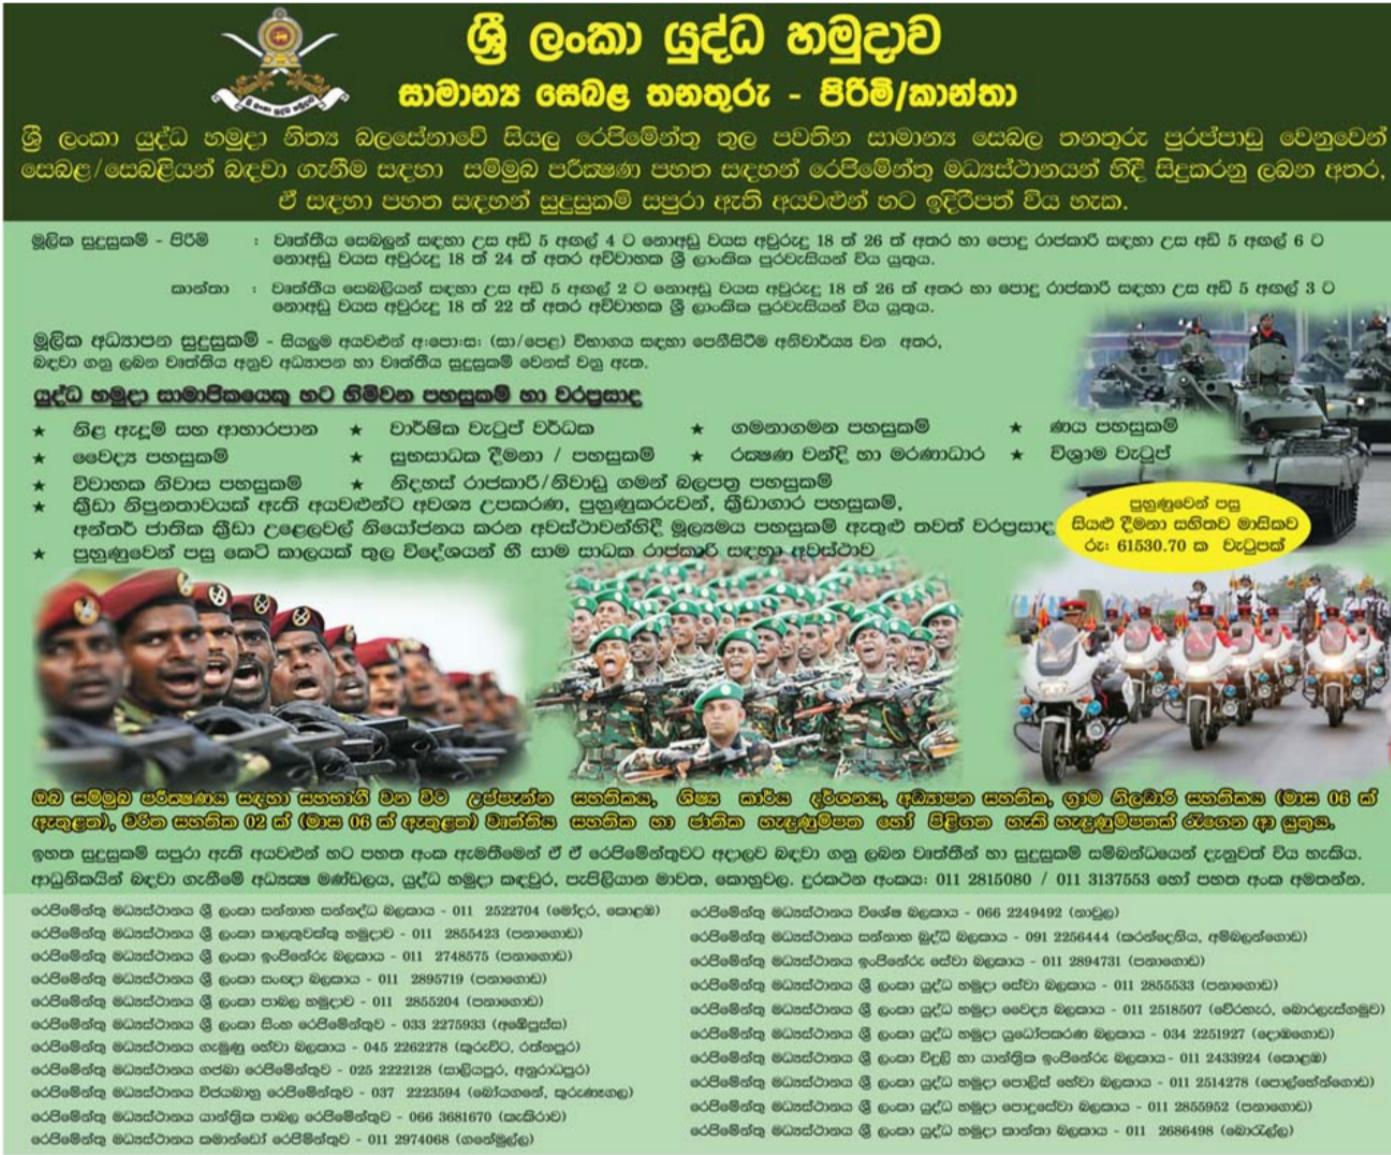 career development in the sri lanka army management essay Management & leadership women in business  you can hire a career development professional, for example, a career counselor or career development facilitator,.